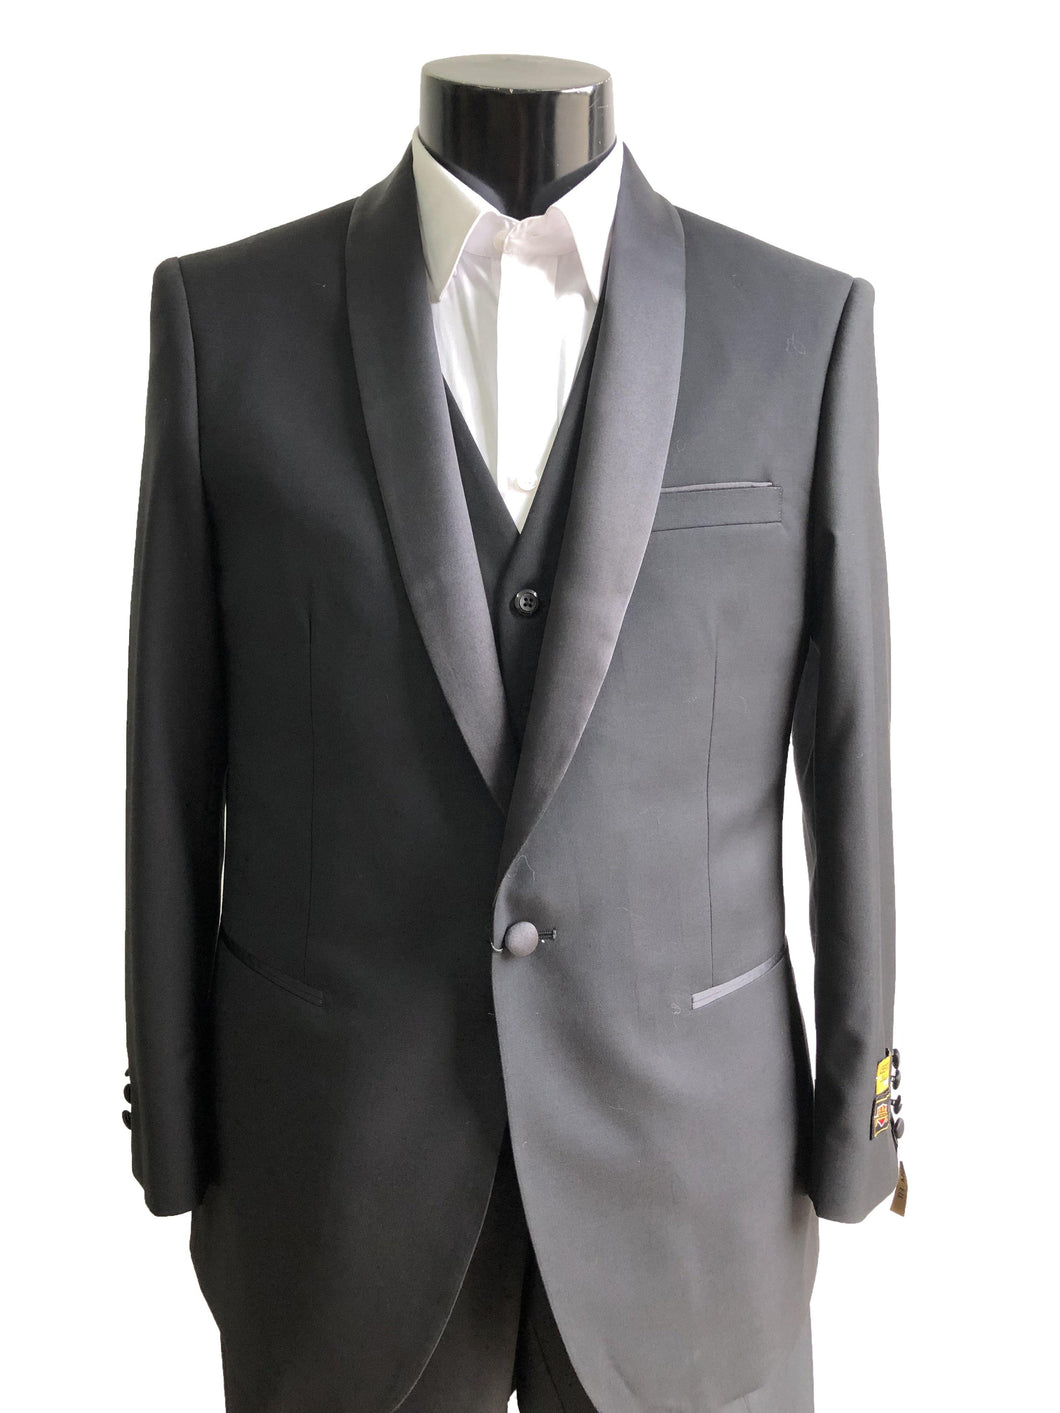 4-A-1BShawl-Tux	Black -  Tuxedo Wholesale  Distributors - AlbertoNardoniStore